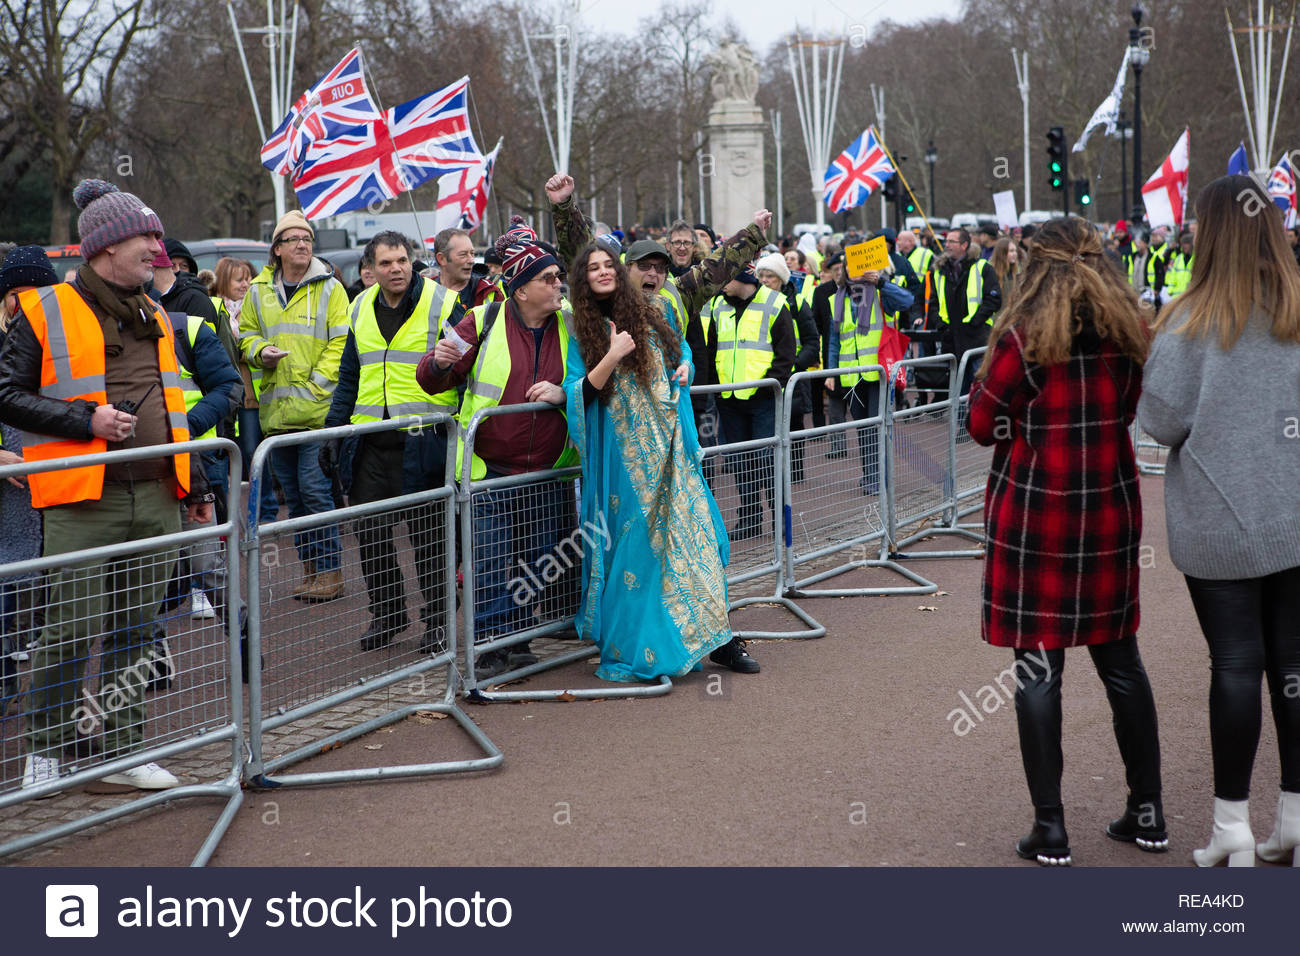 London, UK. 19 January 2019. A woman dressed in Asian dress has friends take photo of her with Yellow Vest protestors. Graeme Barbour/Alamy - Stock Image